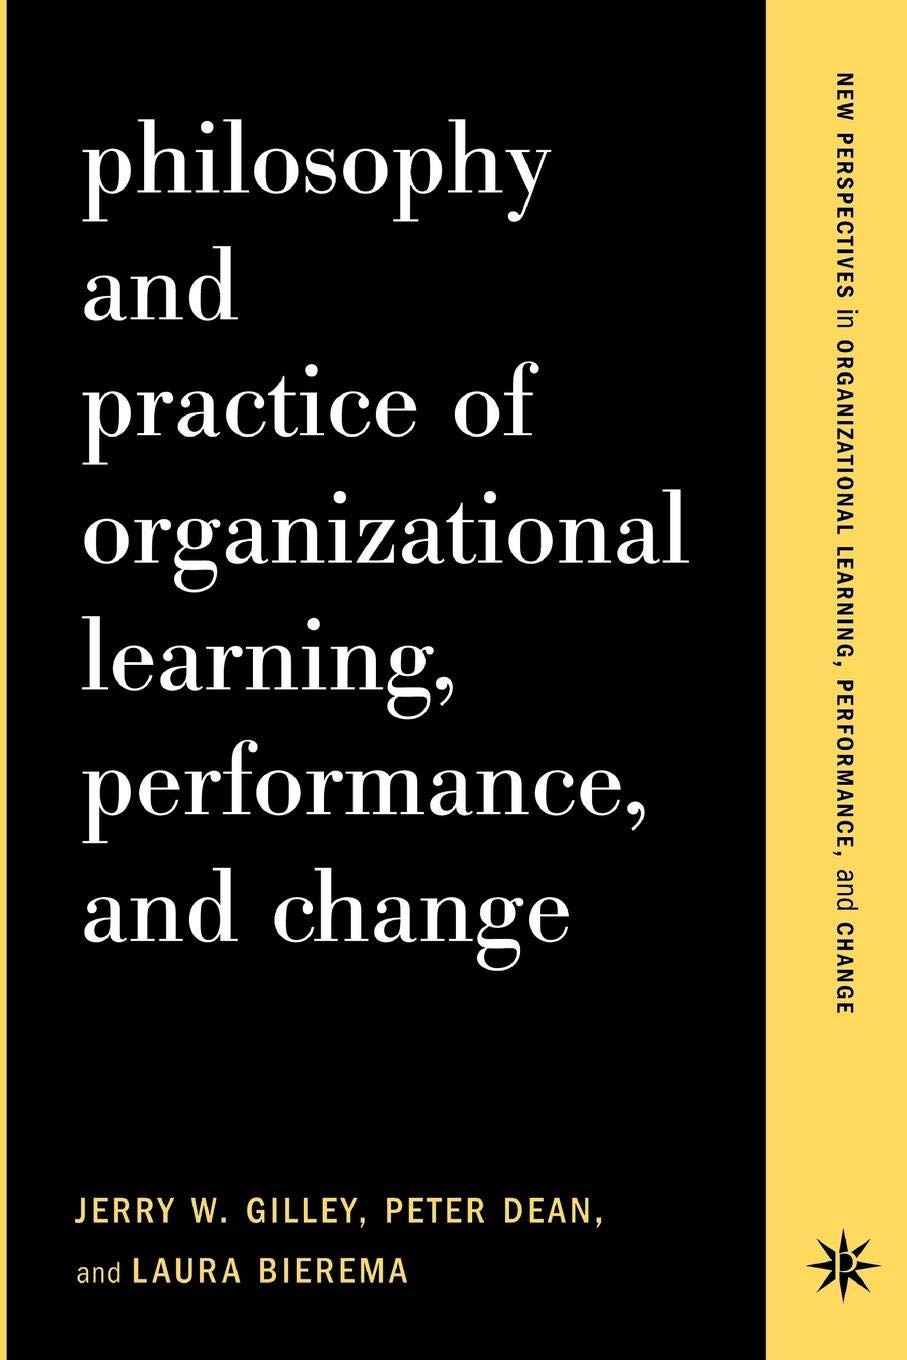 Philosophy and Practice of Organizational Learning, Performance, and Change